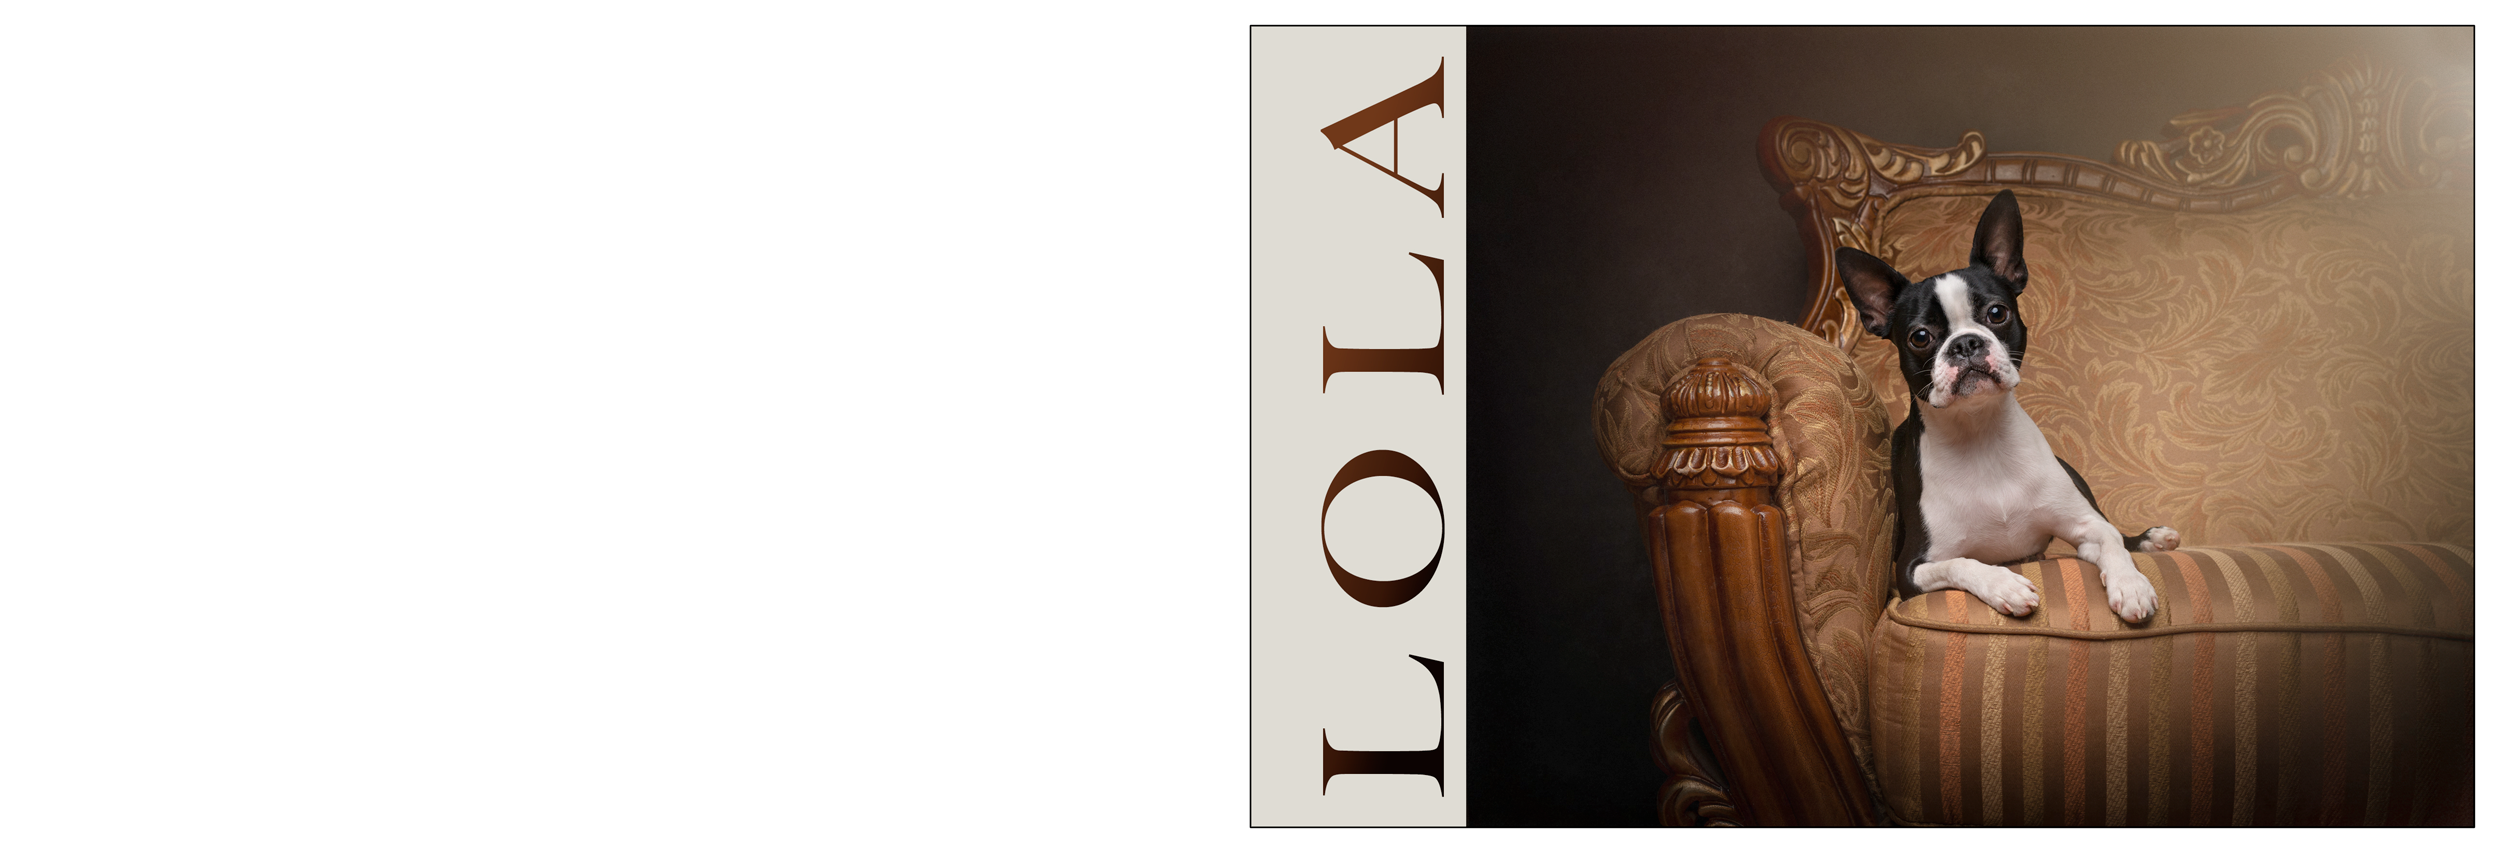 Lola-Cover-1.png